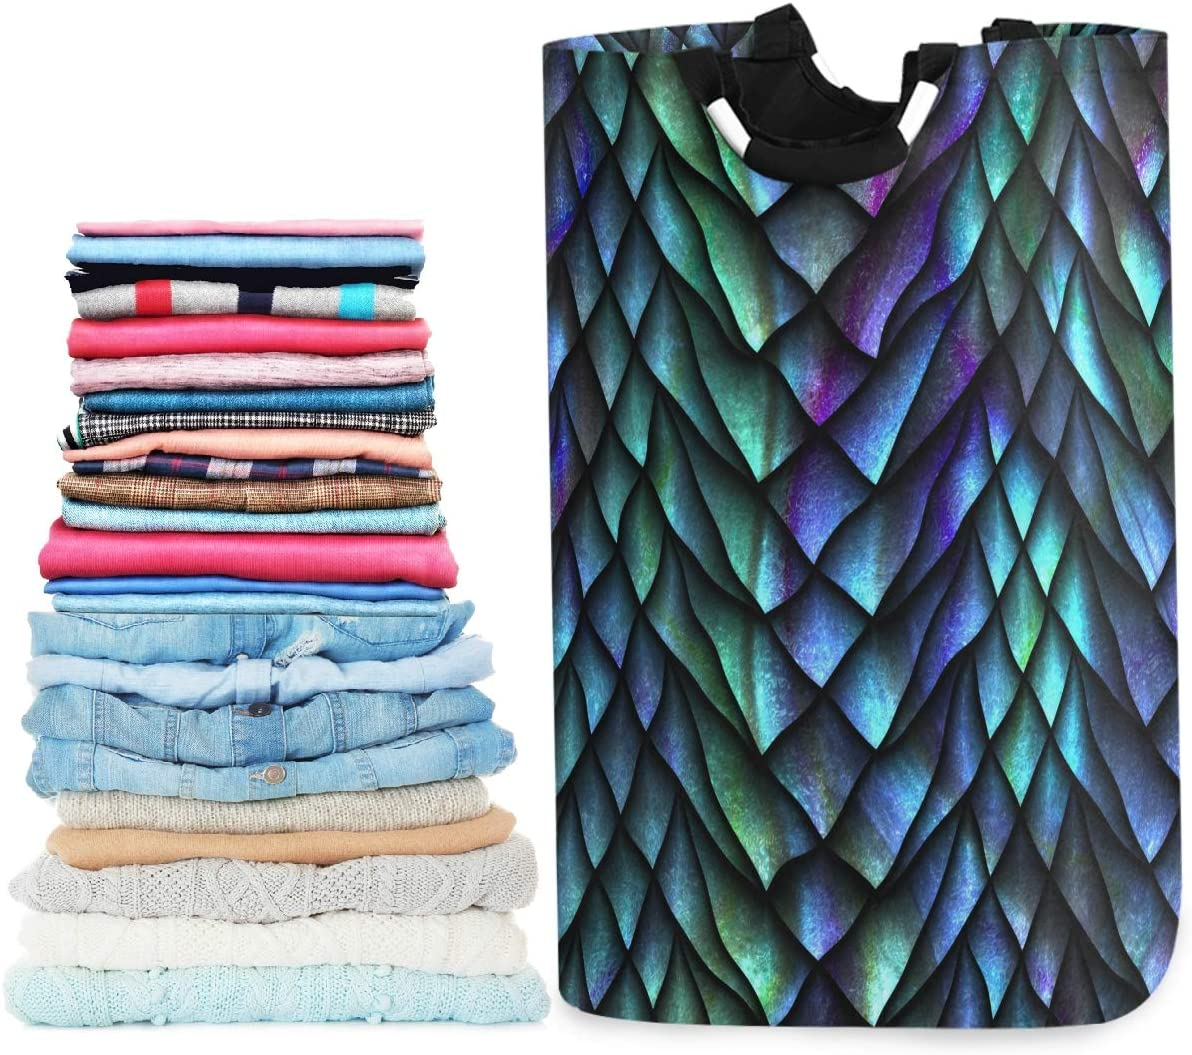 visesunny Collapsible Laundry Basket Cool Dragon Scale 3D Print Large Laundry Hamper Oxford Fabric Dirty Clothes Toy Organizer with Handle for Bathroom Bedroom Kids Room Dorm